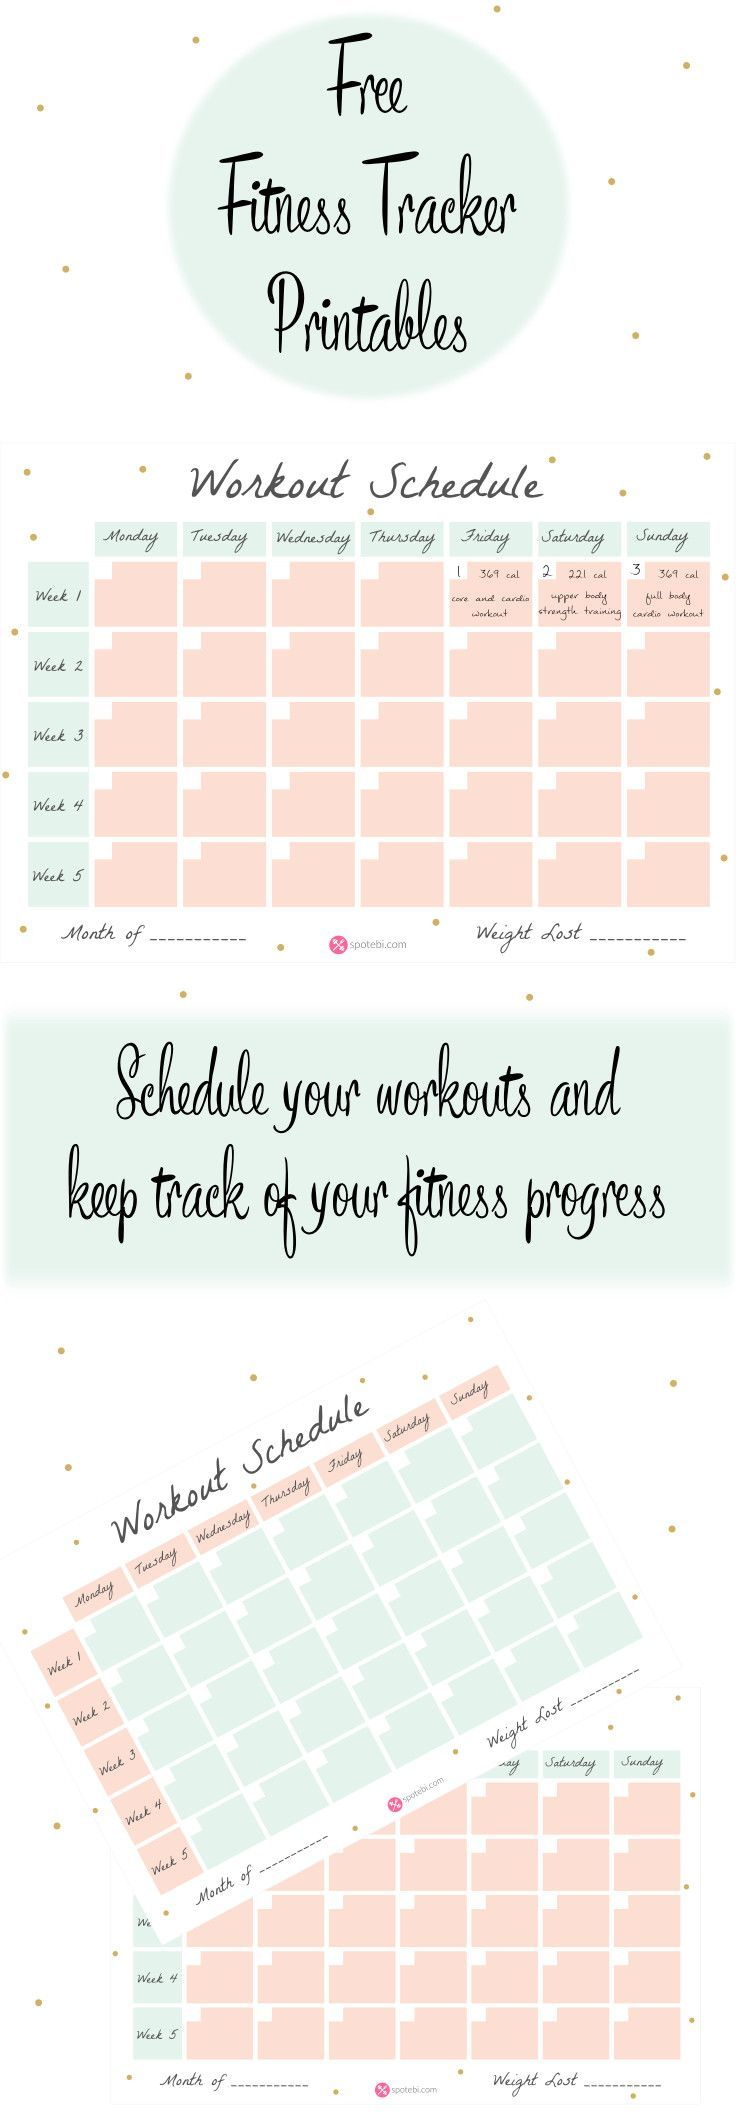 workout schedule template schedule templates workout schedule and workout plans. Black Bedroom Furniture Sets. Home Design Ideas